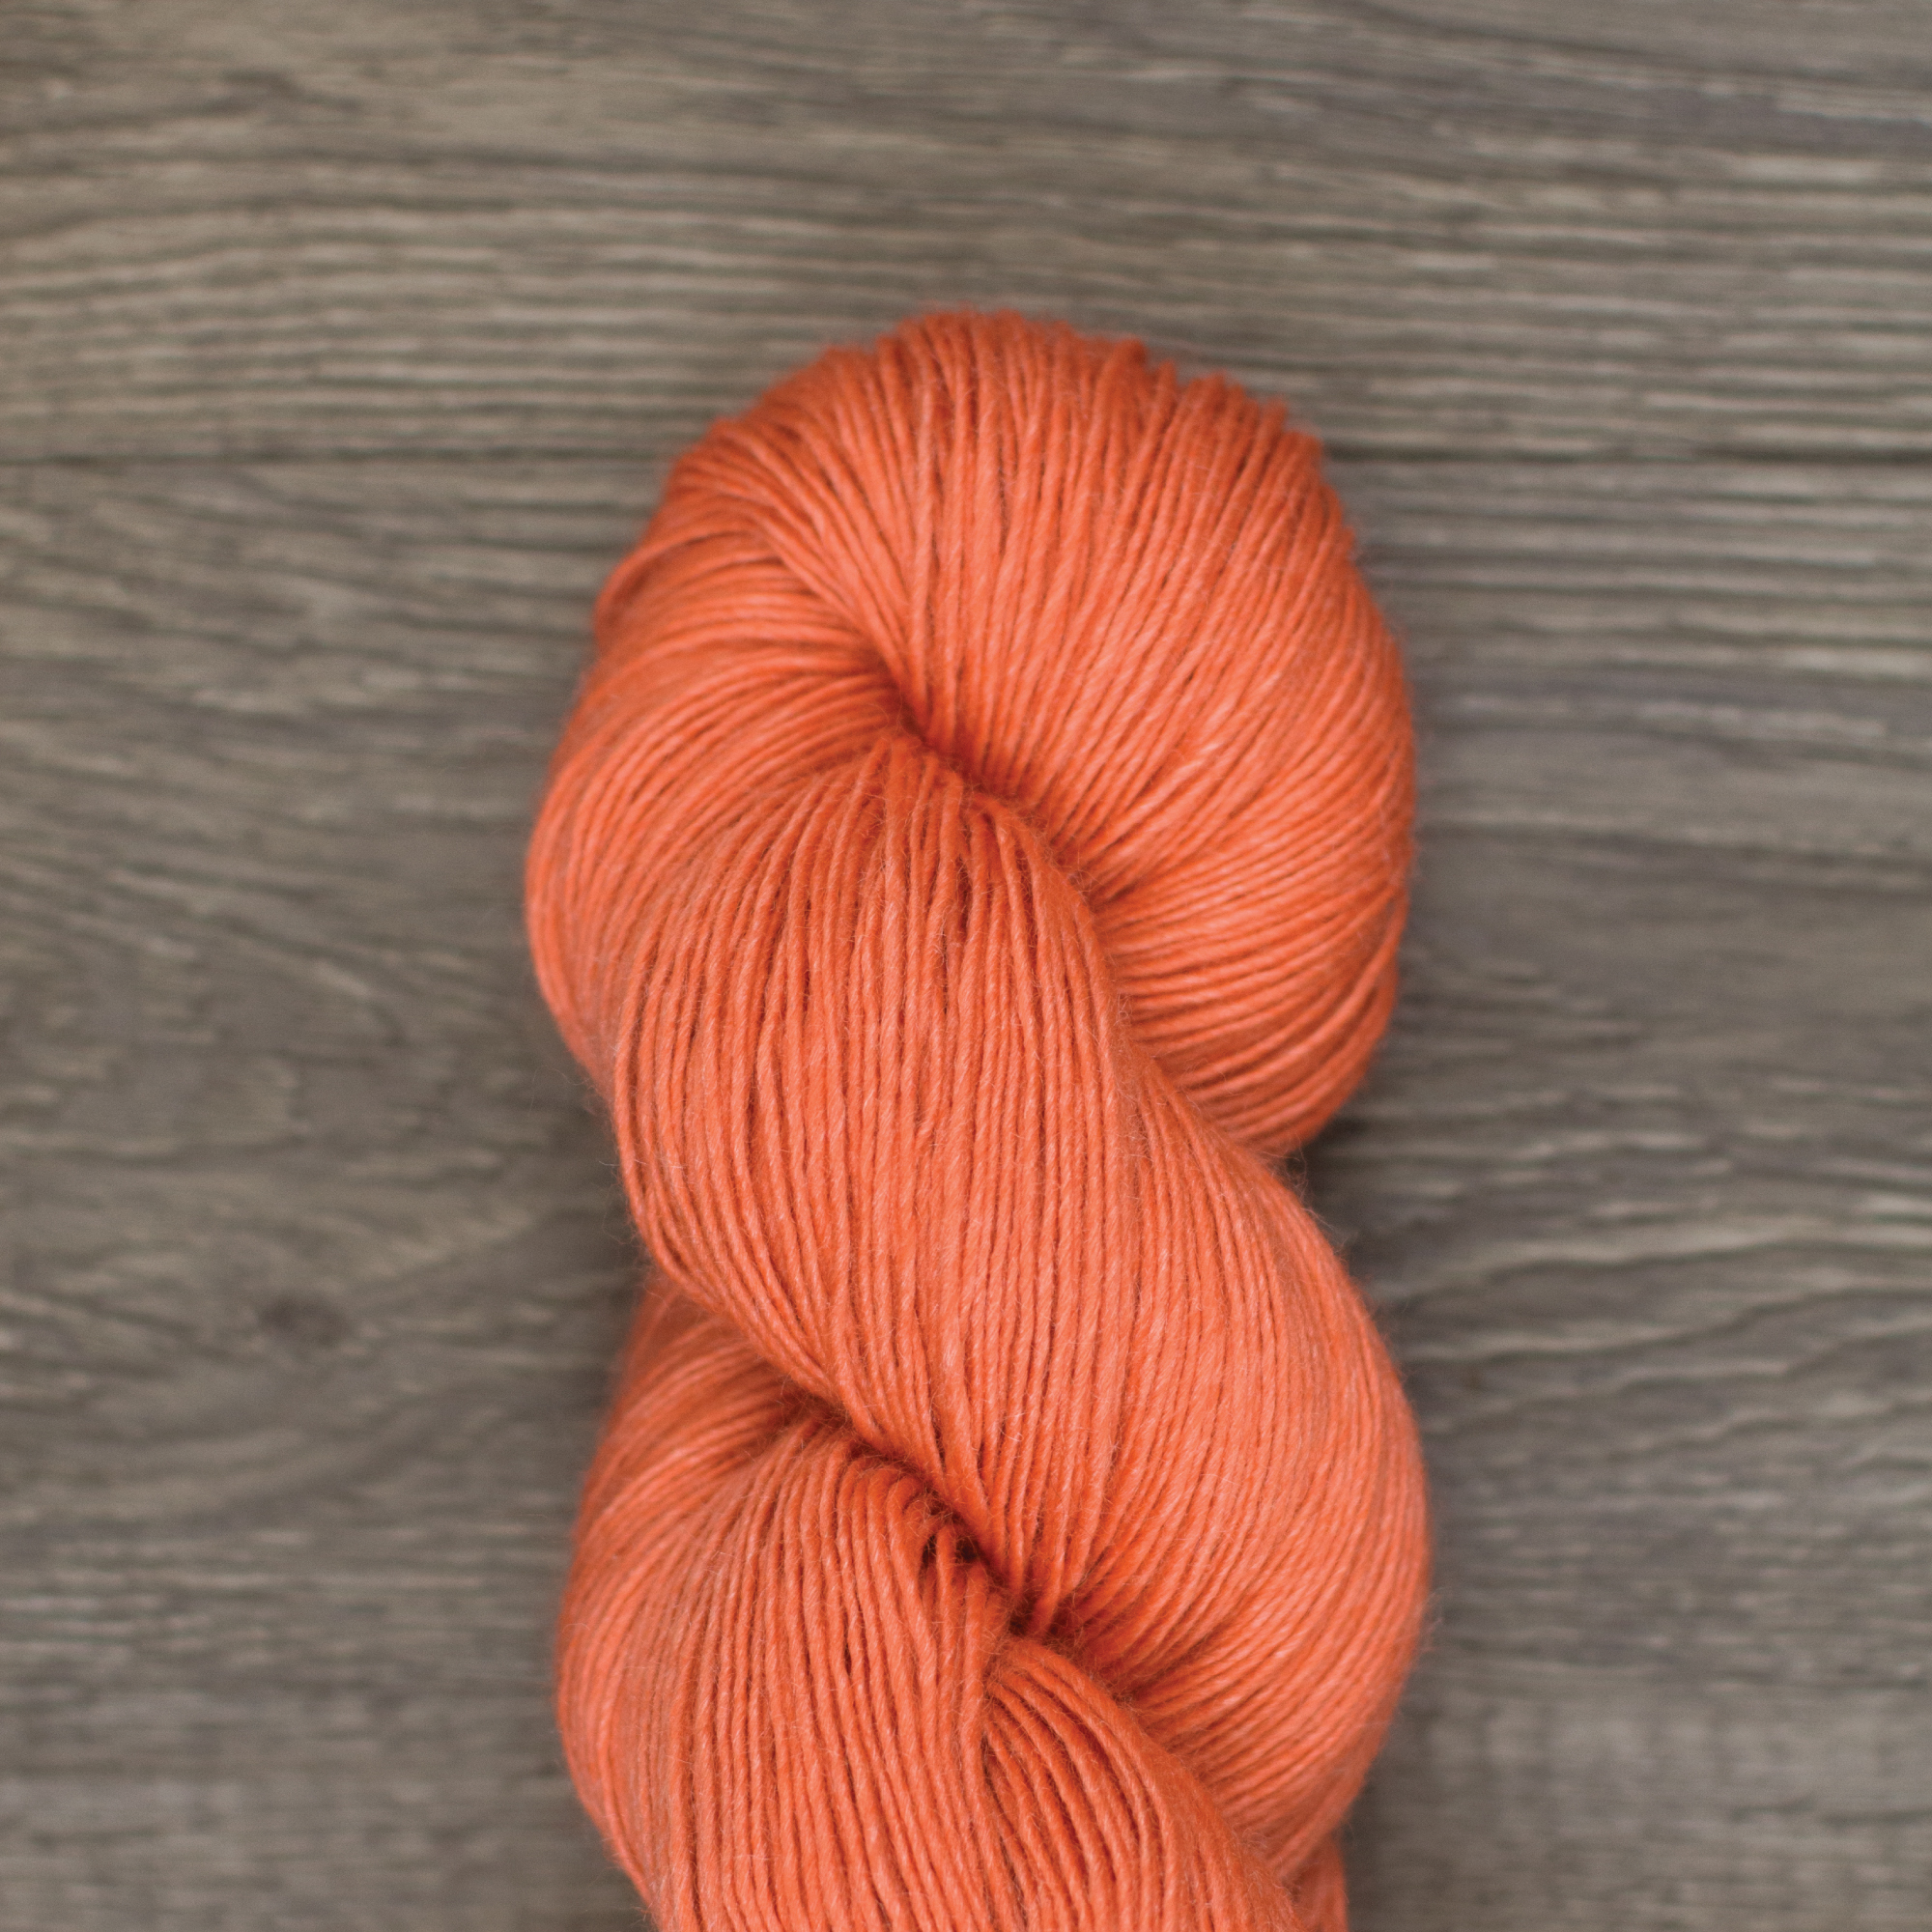 FILO by Cloud9 Fibers — 900031 | BEGONIA